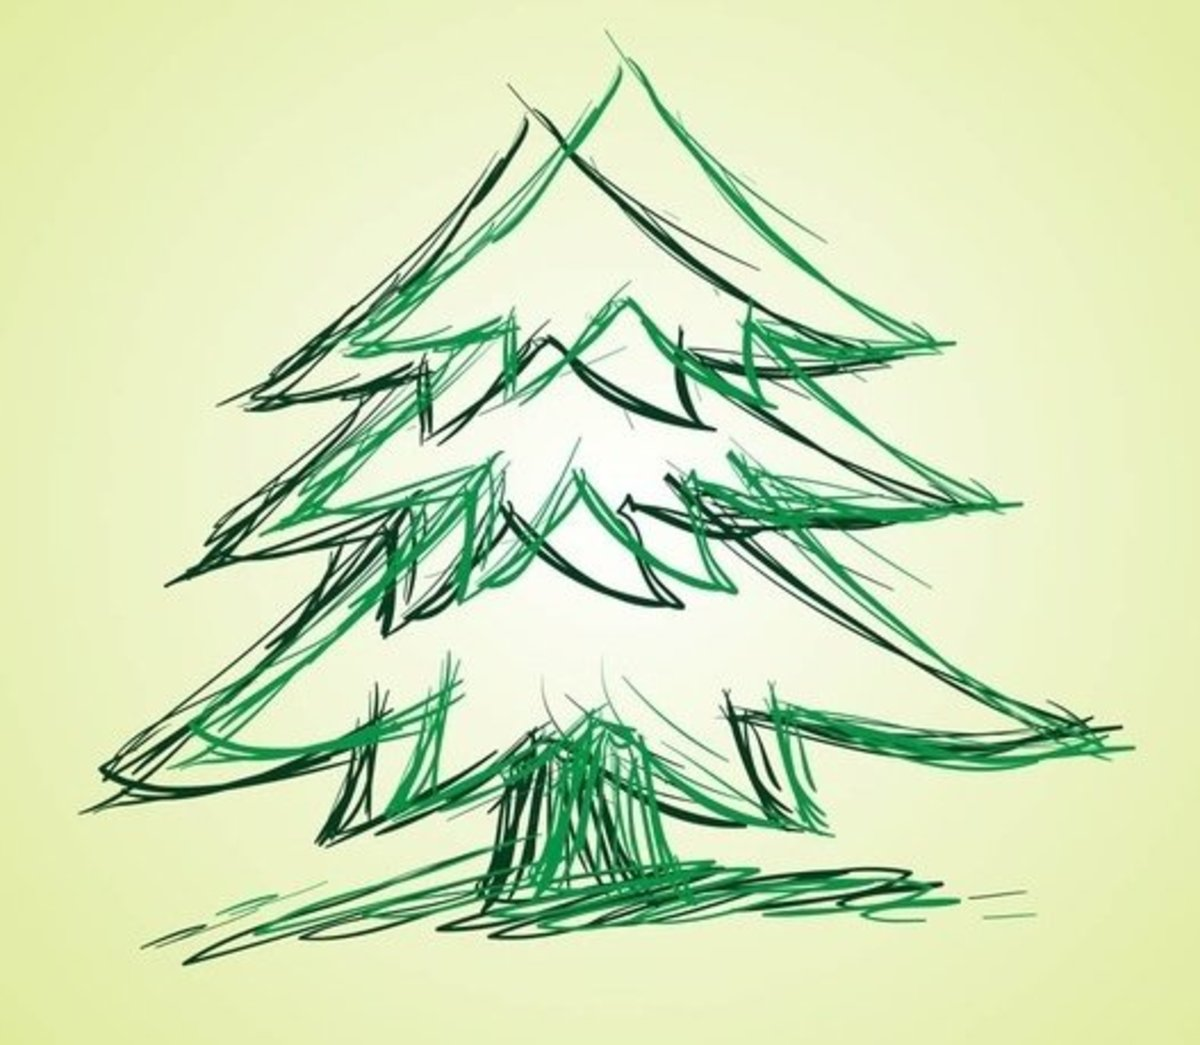 Sketch of Two Pine Trees